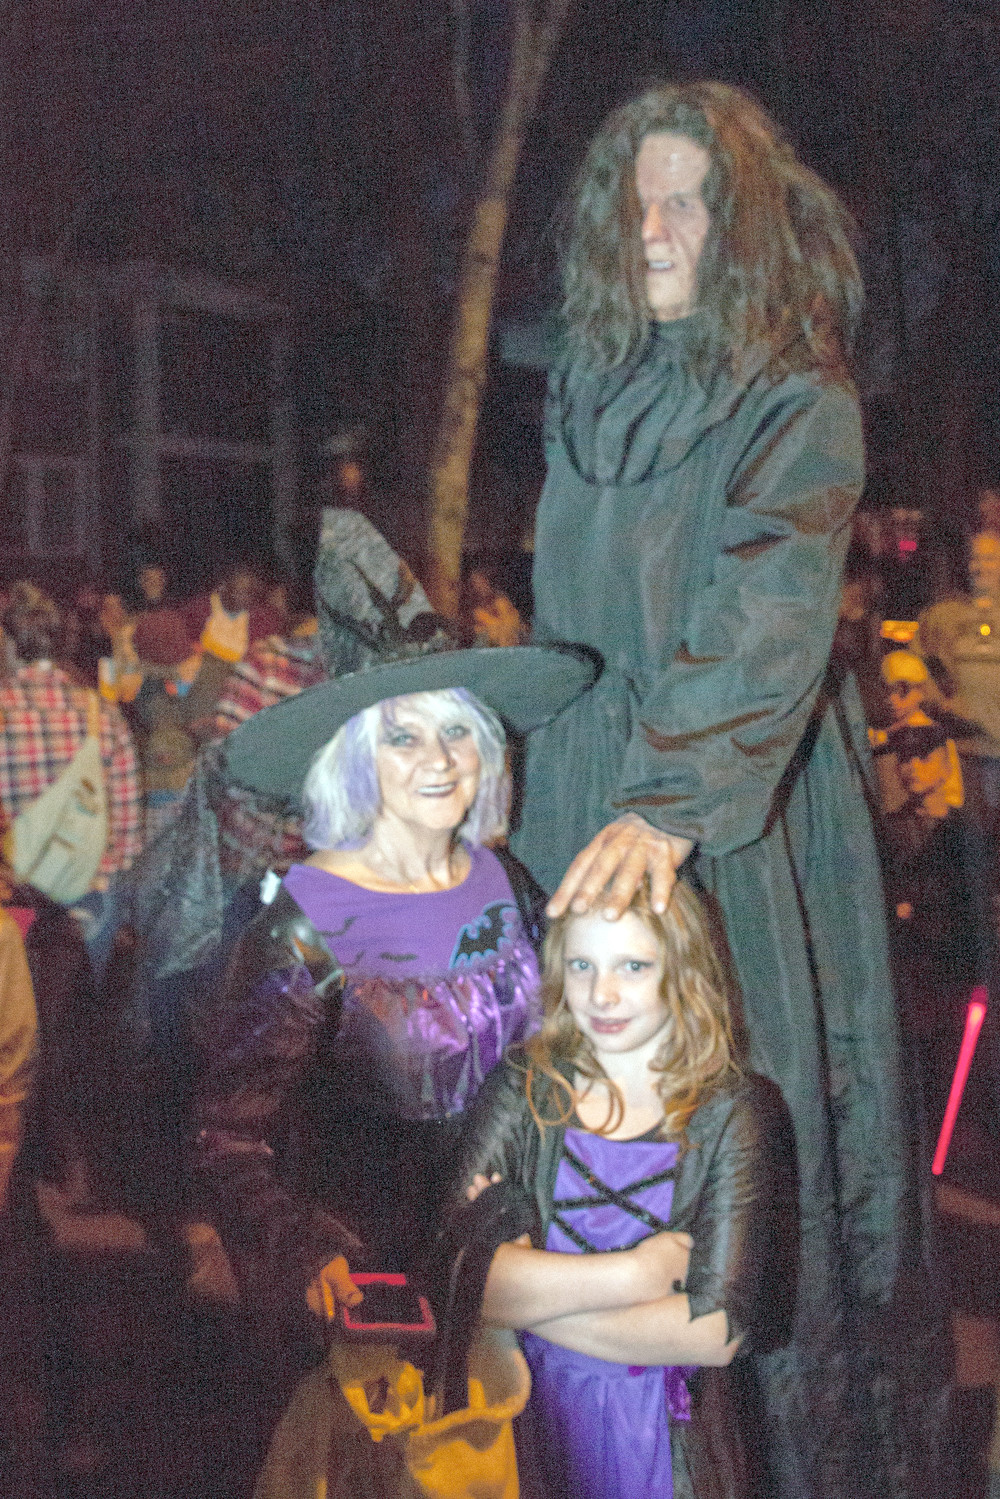 JUST AS PREDICTED, Tall Betsy made an appearance on Centenary Avenue on Halloween night.  She was surrounded by throngs of people requesting photographs with the local legend.  With Tall Betsy are Donna Adams, left, and Kyliegh Adams